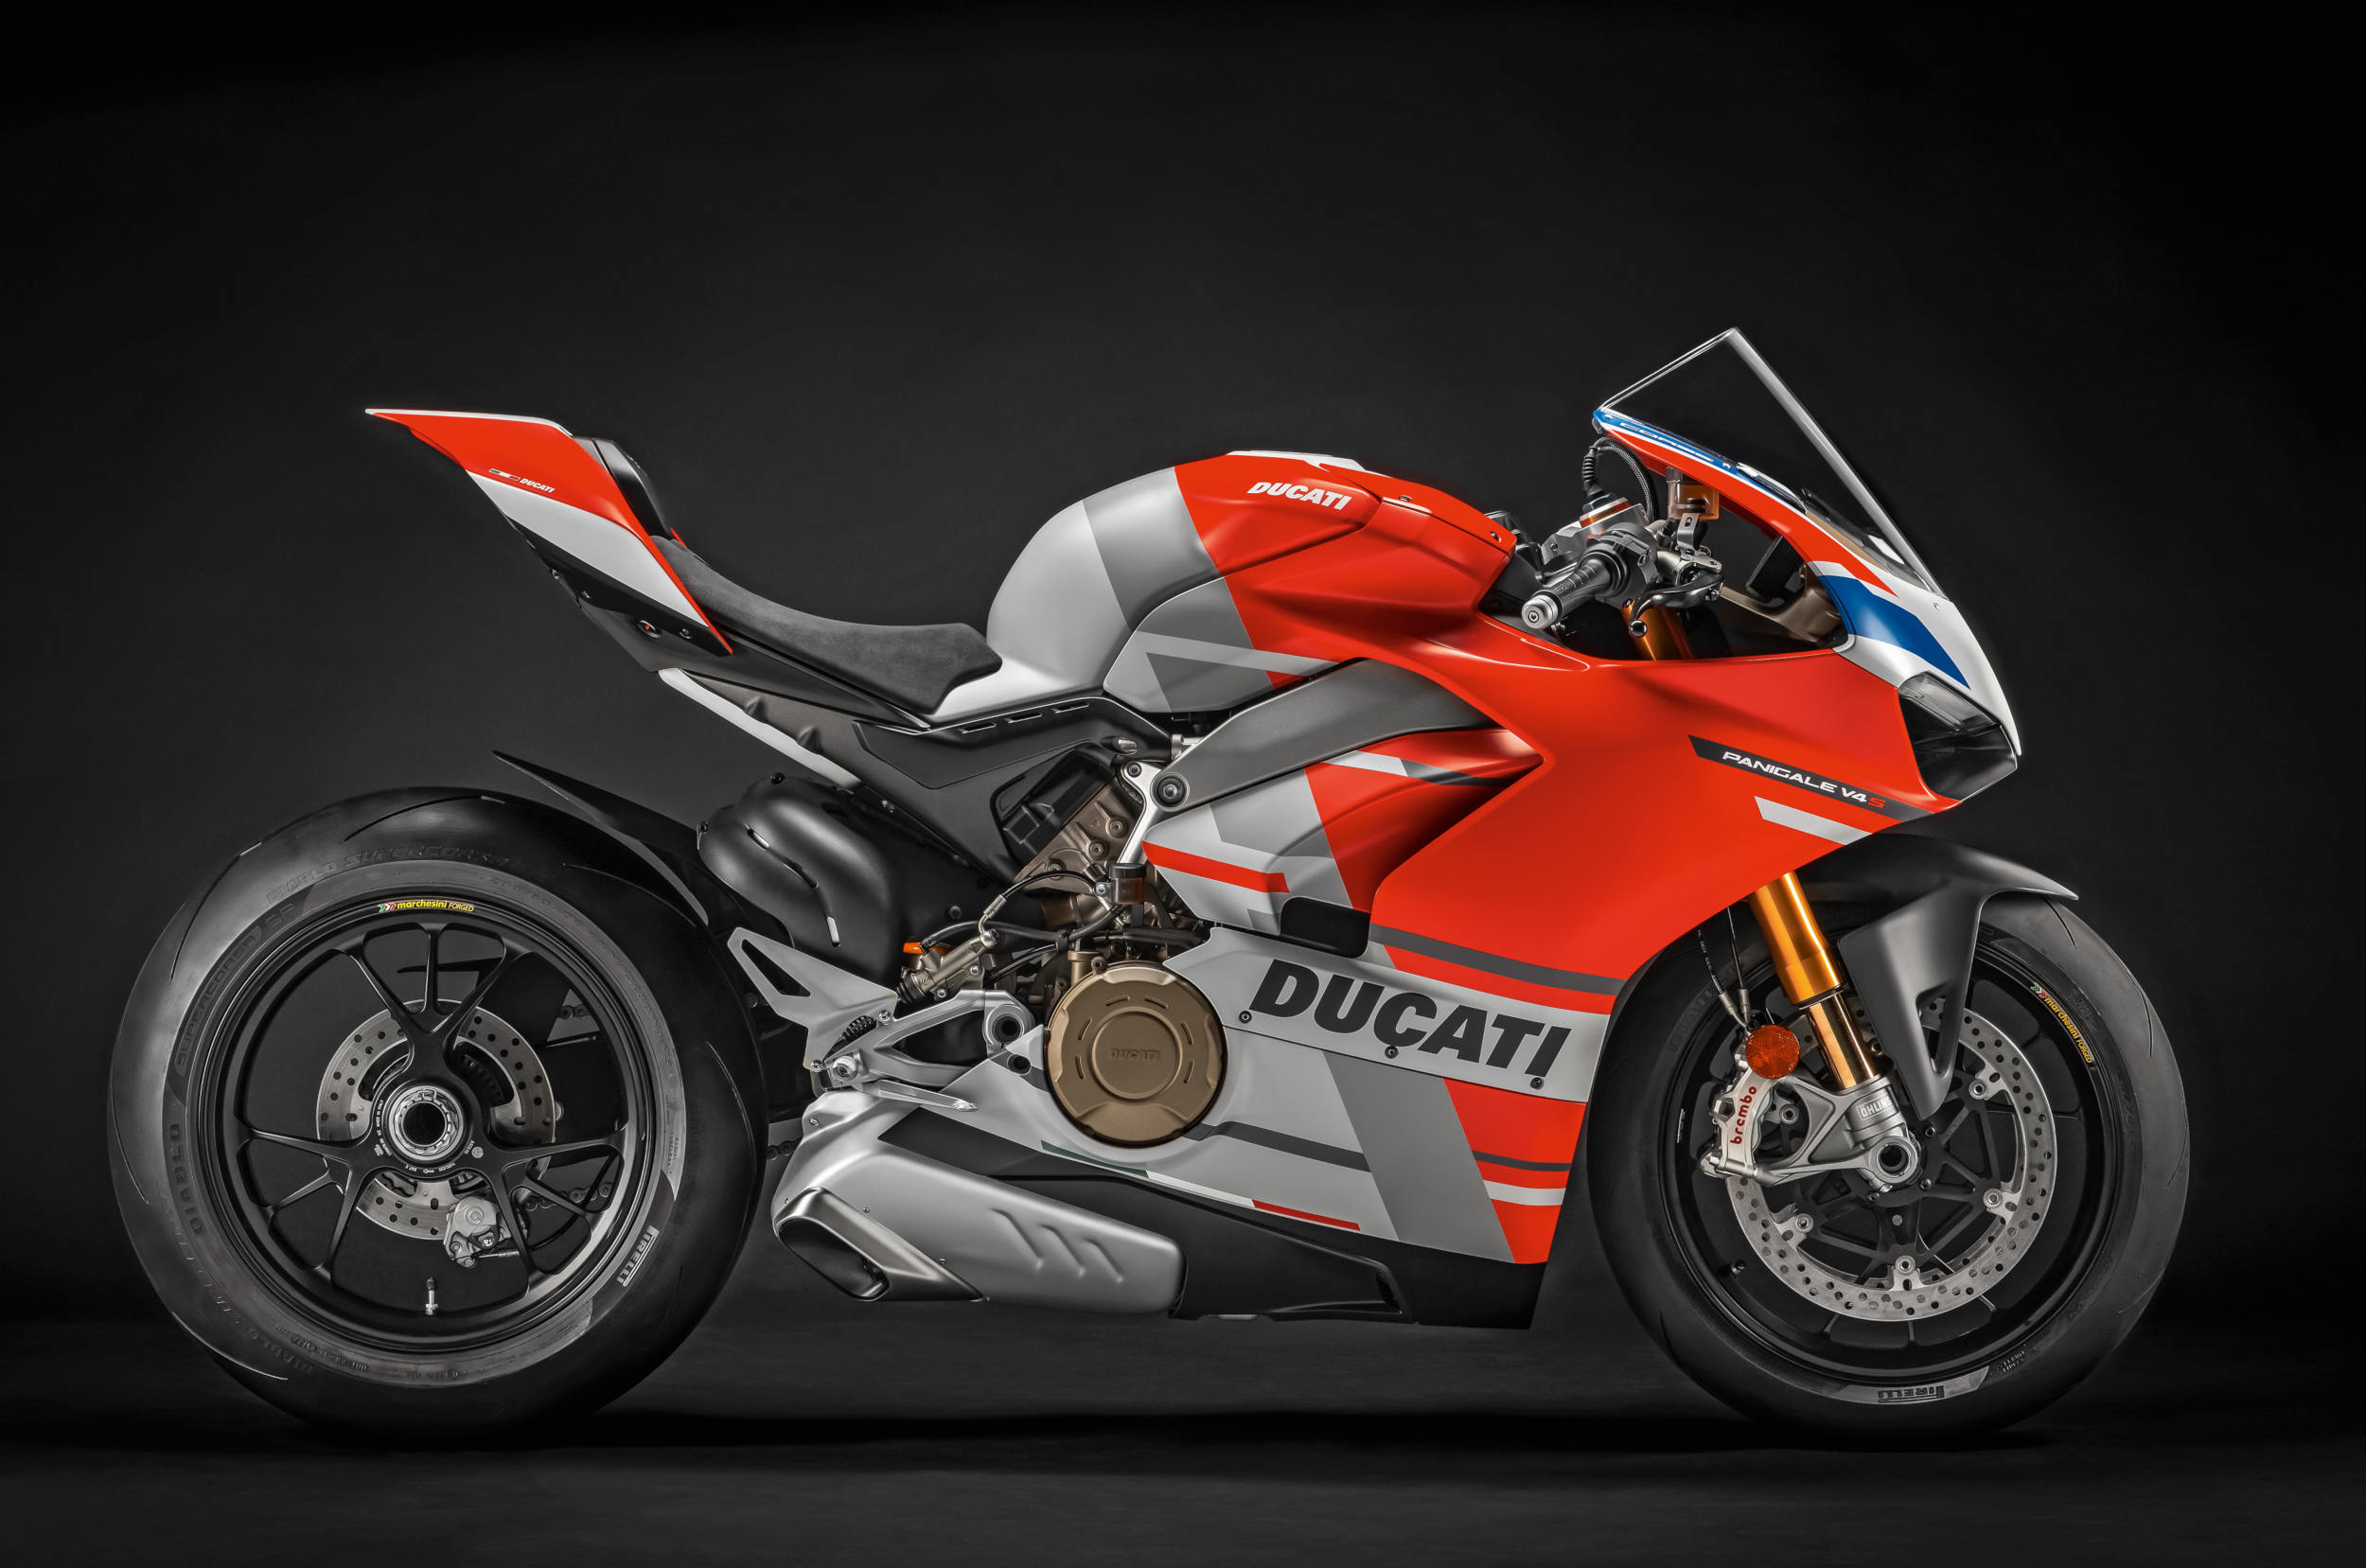 New 2019 Models from Ducati Unveiled in Milan, Including Hypermotard 950, Diavel 1260 and ...